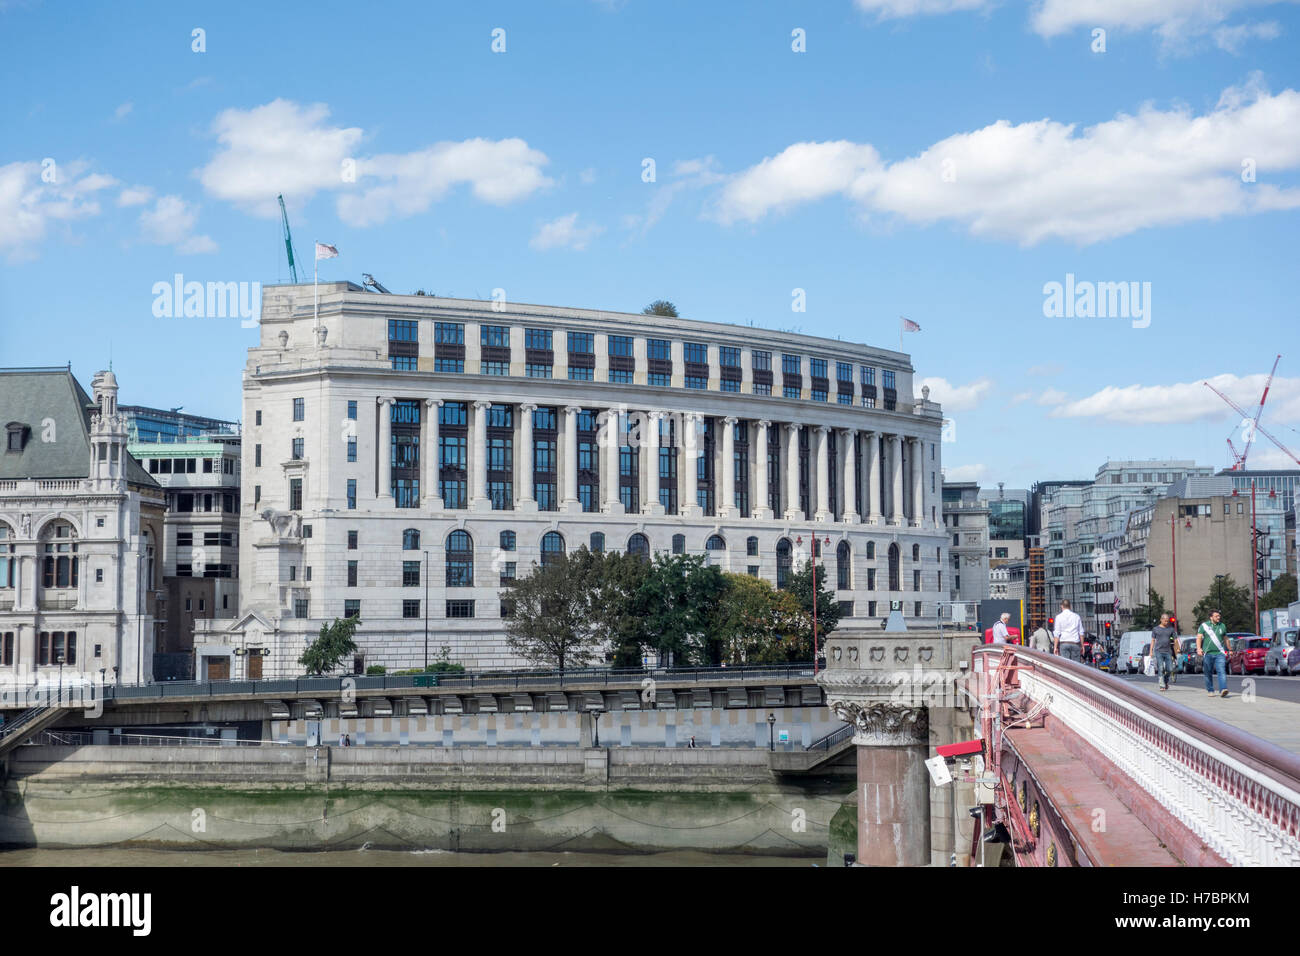 Unilever House, 100 Victoria Embankment, Unilever global headquarters head office. New Bridge Street, Victoria Embankment, - Stock Image